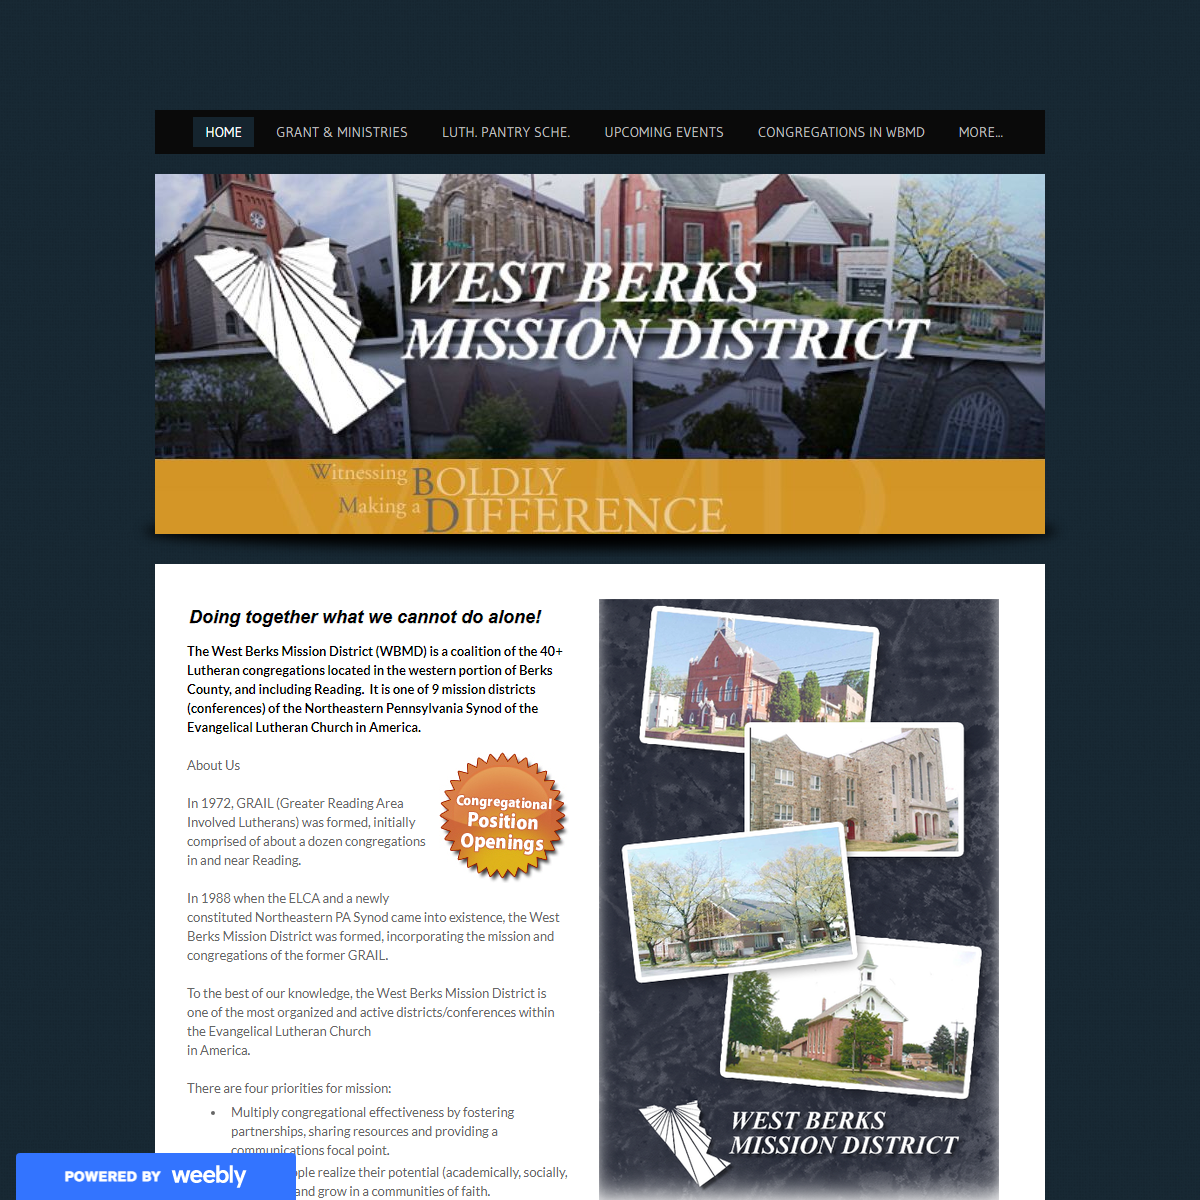 A complete backup of https://wbmissiondistrict.weebly.com/